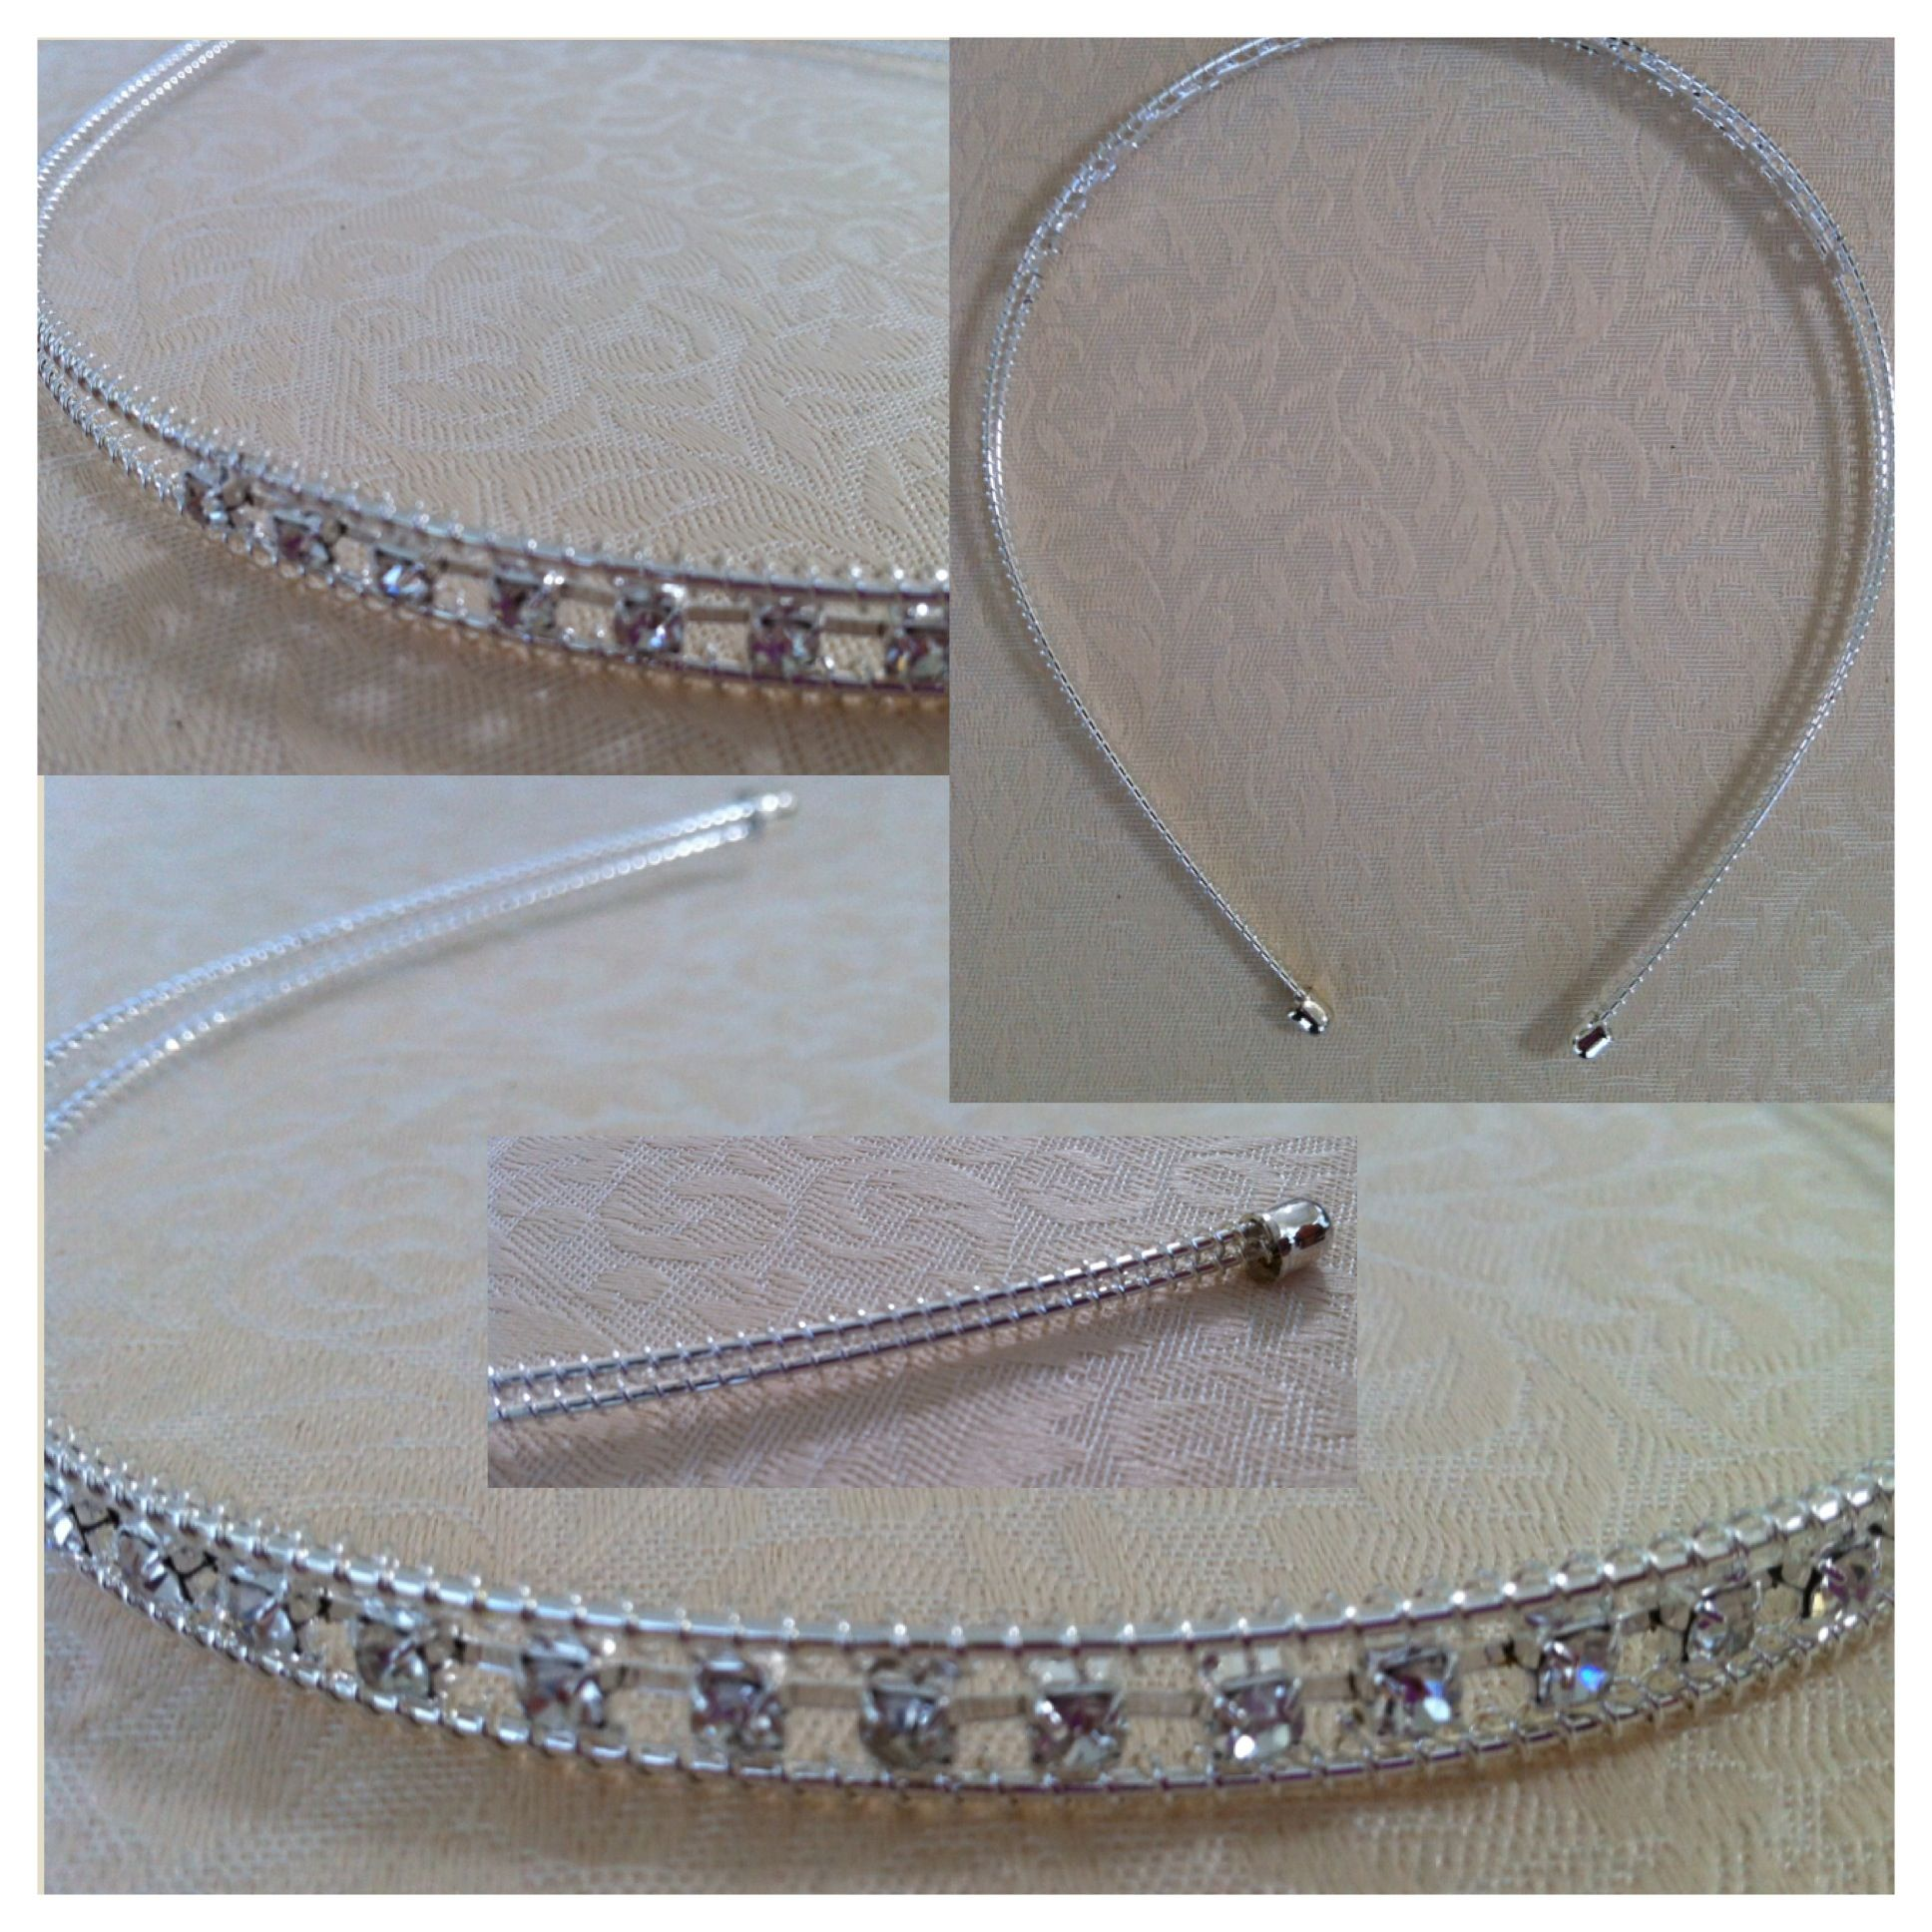 Silver wire/metal headband with rhinestone 'bling' - AUD$6.95 + postage or local pick up available.